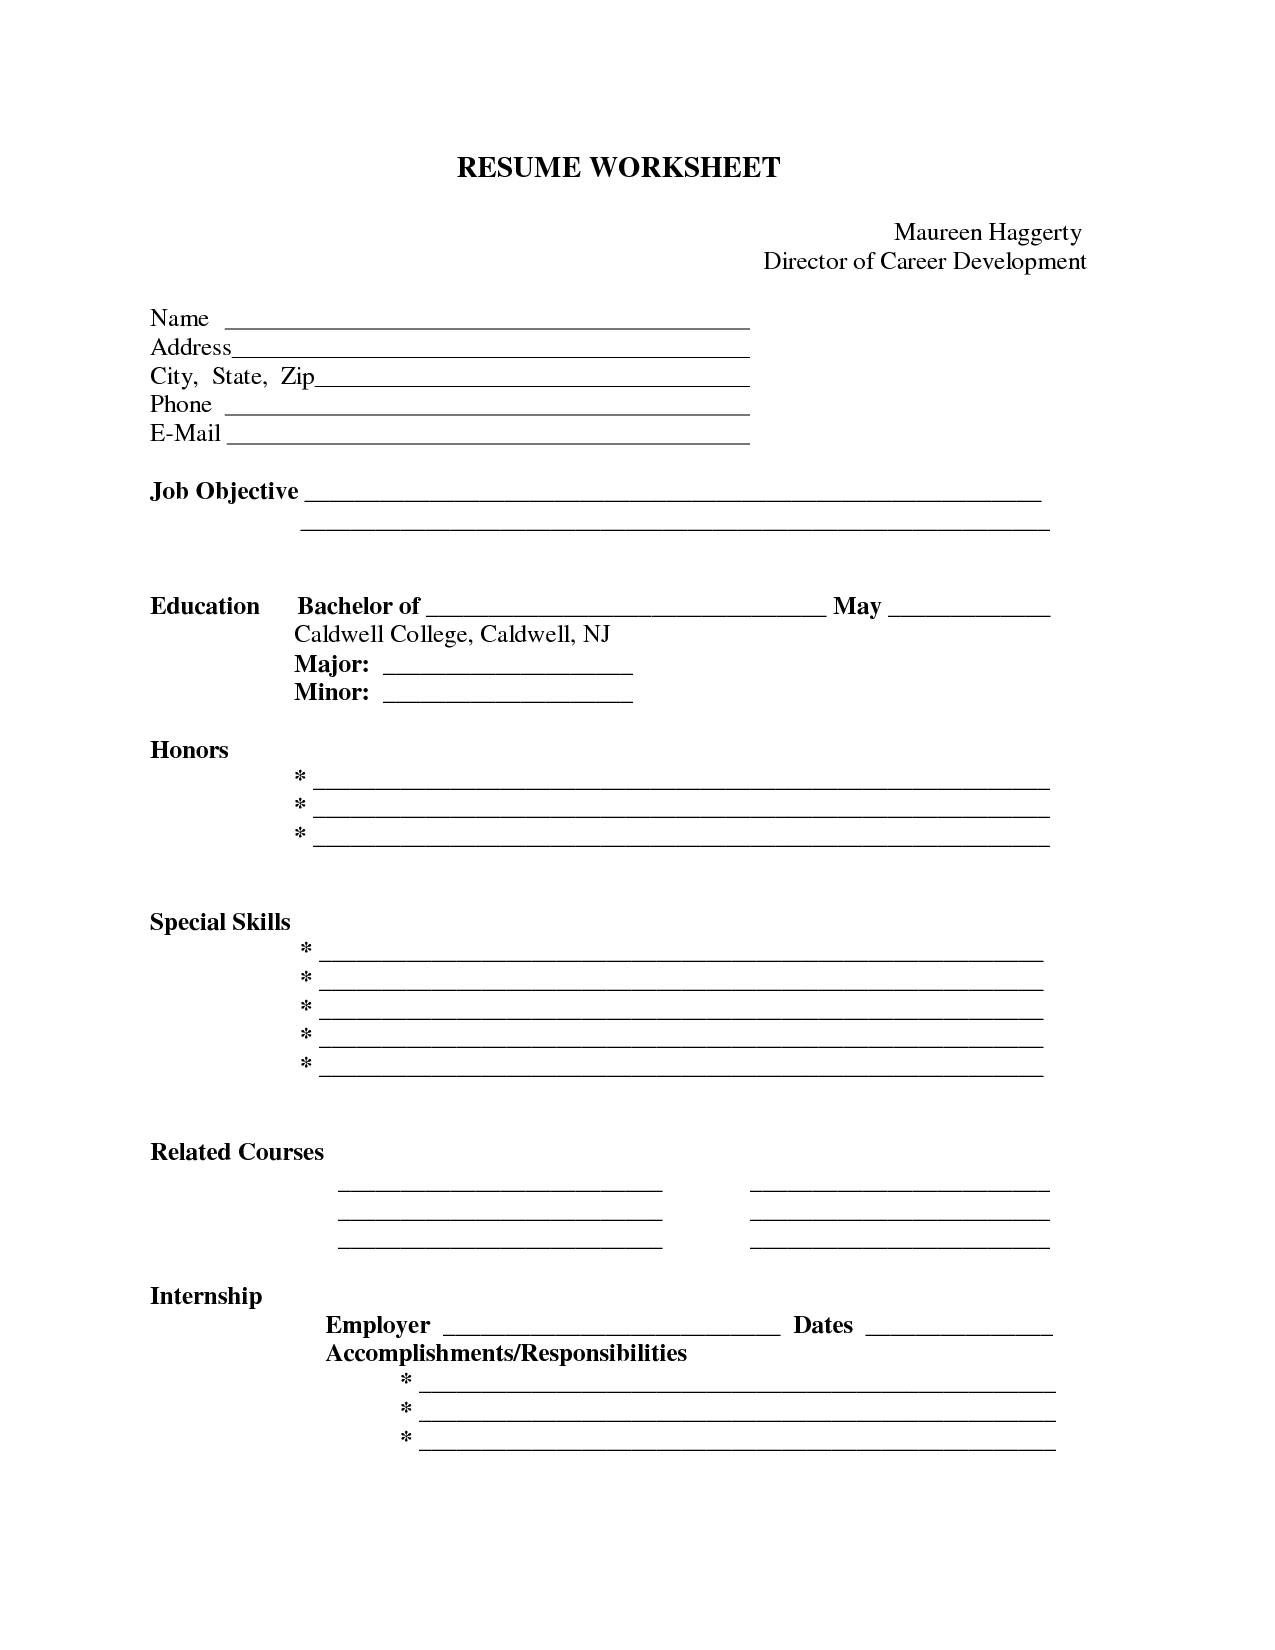 Free Printable Job Resume Forms - Kaza.psstech.co - Free Blank Resume Forms Printable